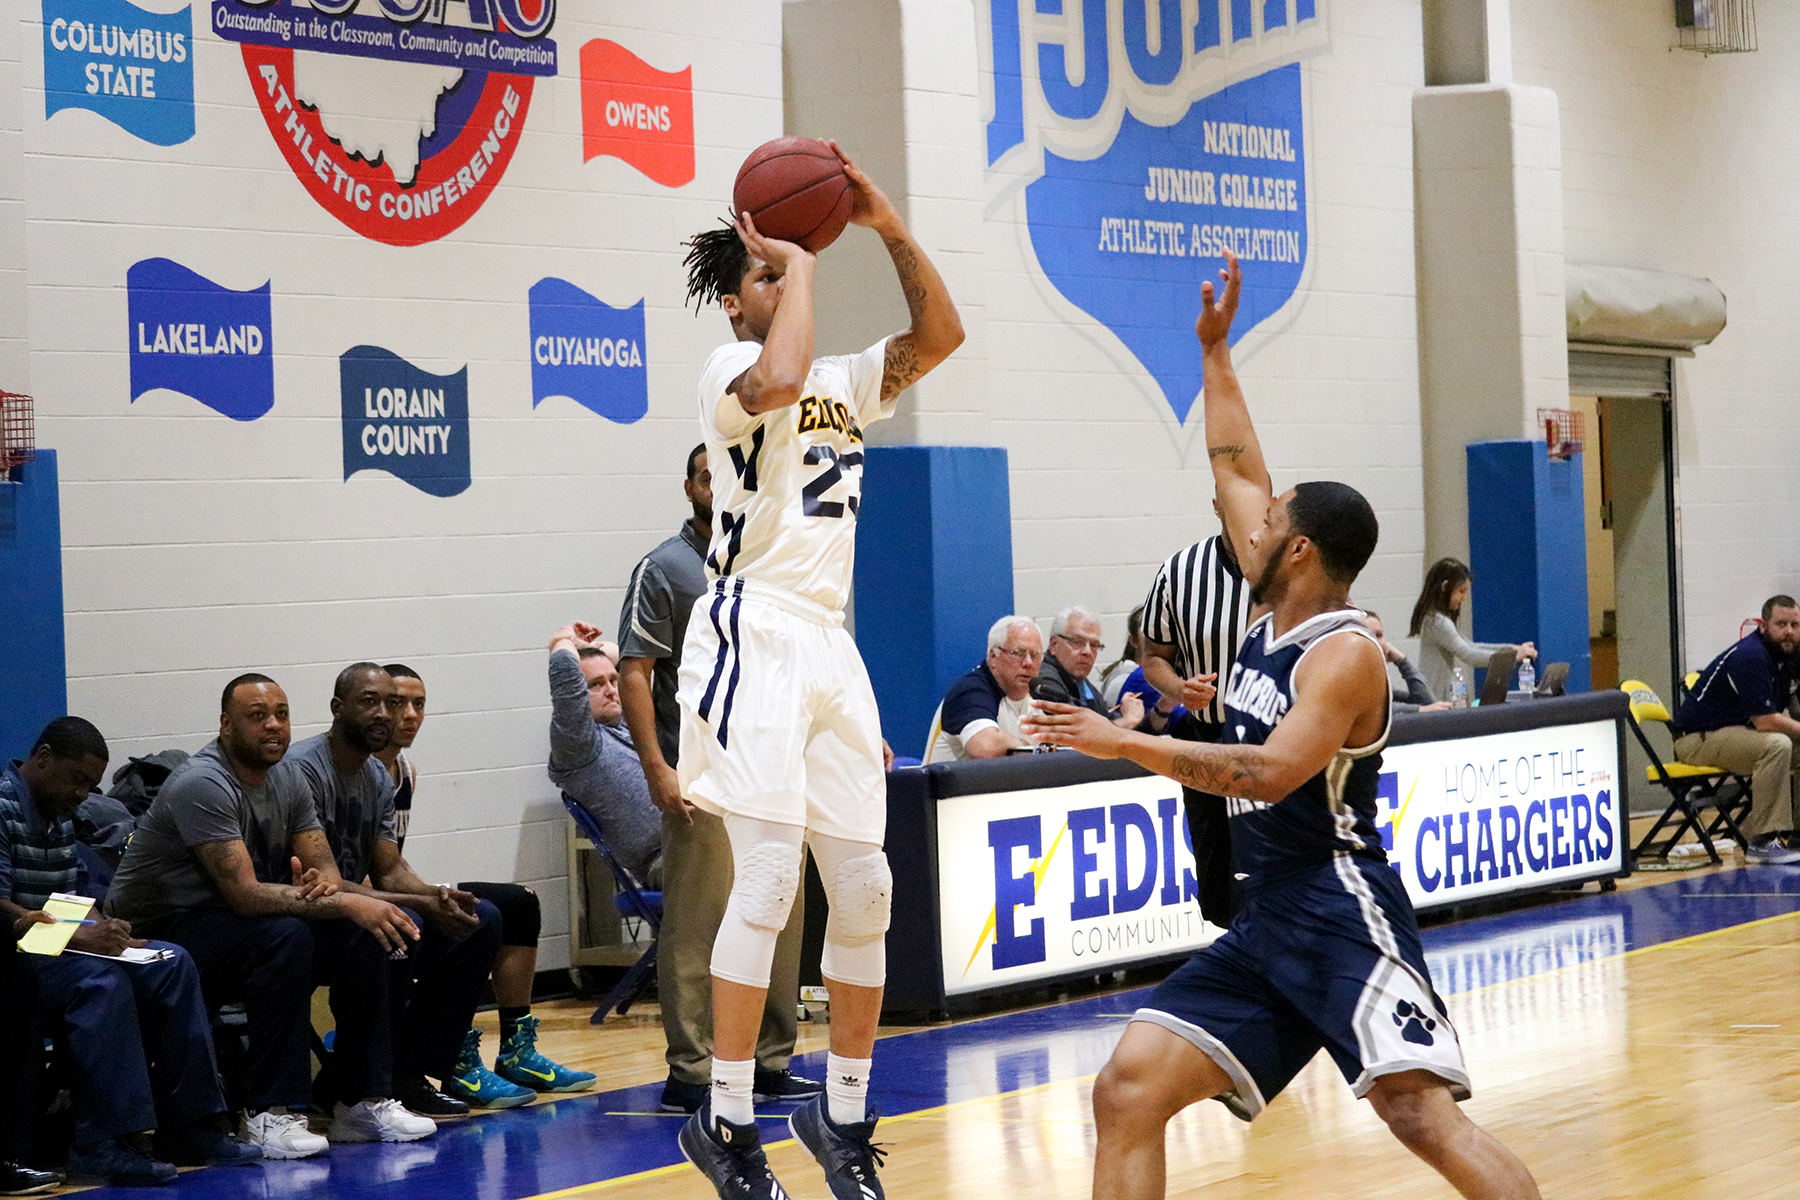 Charger Men Win 112-72 Over Hocking College